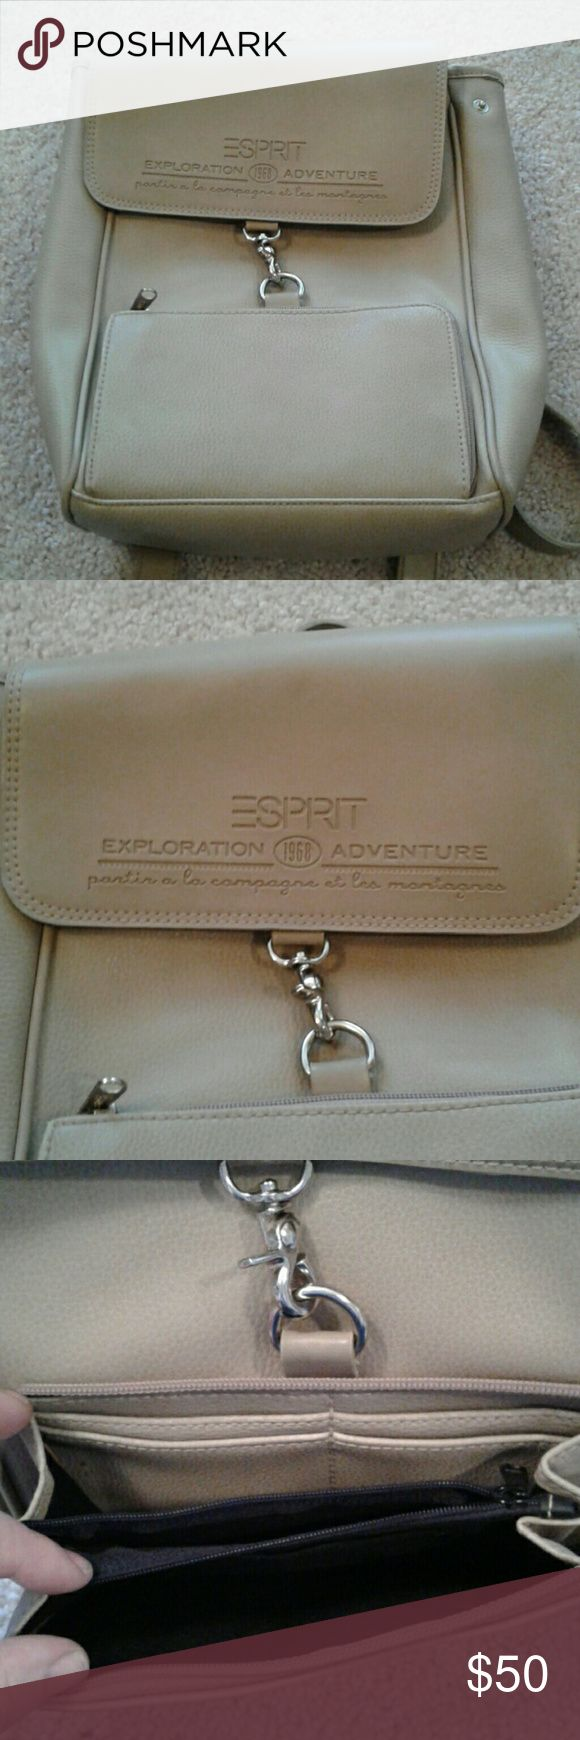 VTG ESPRIT Tan Leather Mini Backpack Purse The 90's are back, and what accessory says that better than a mini backpack purse. Great for traveling fashionistas or those of us who just want our handbag out of the way.   Bag measures 12 inches x 9 inches x 3 inches. This bag has been carried in the past and has many small blemishes seen in the photos. I've used leather conditioner to remove the worst of the marks, and I think continued care will improve the rest. Price reflects condition…